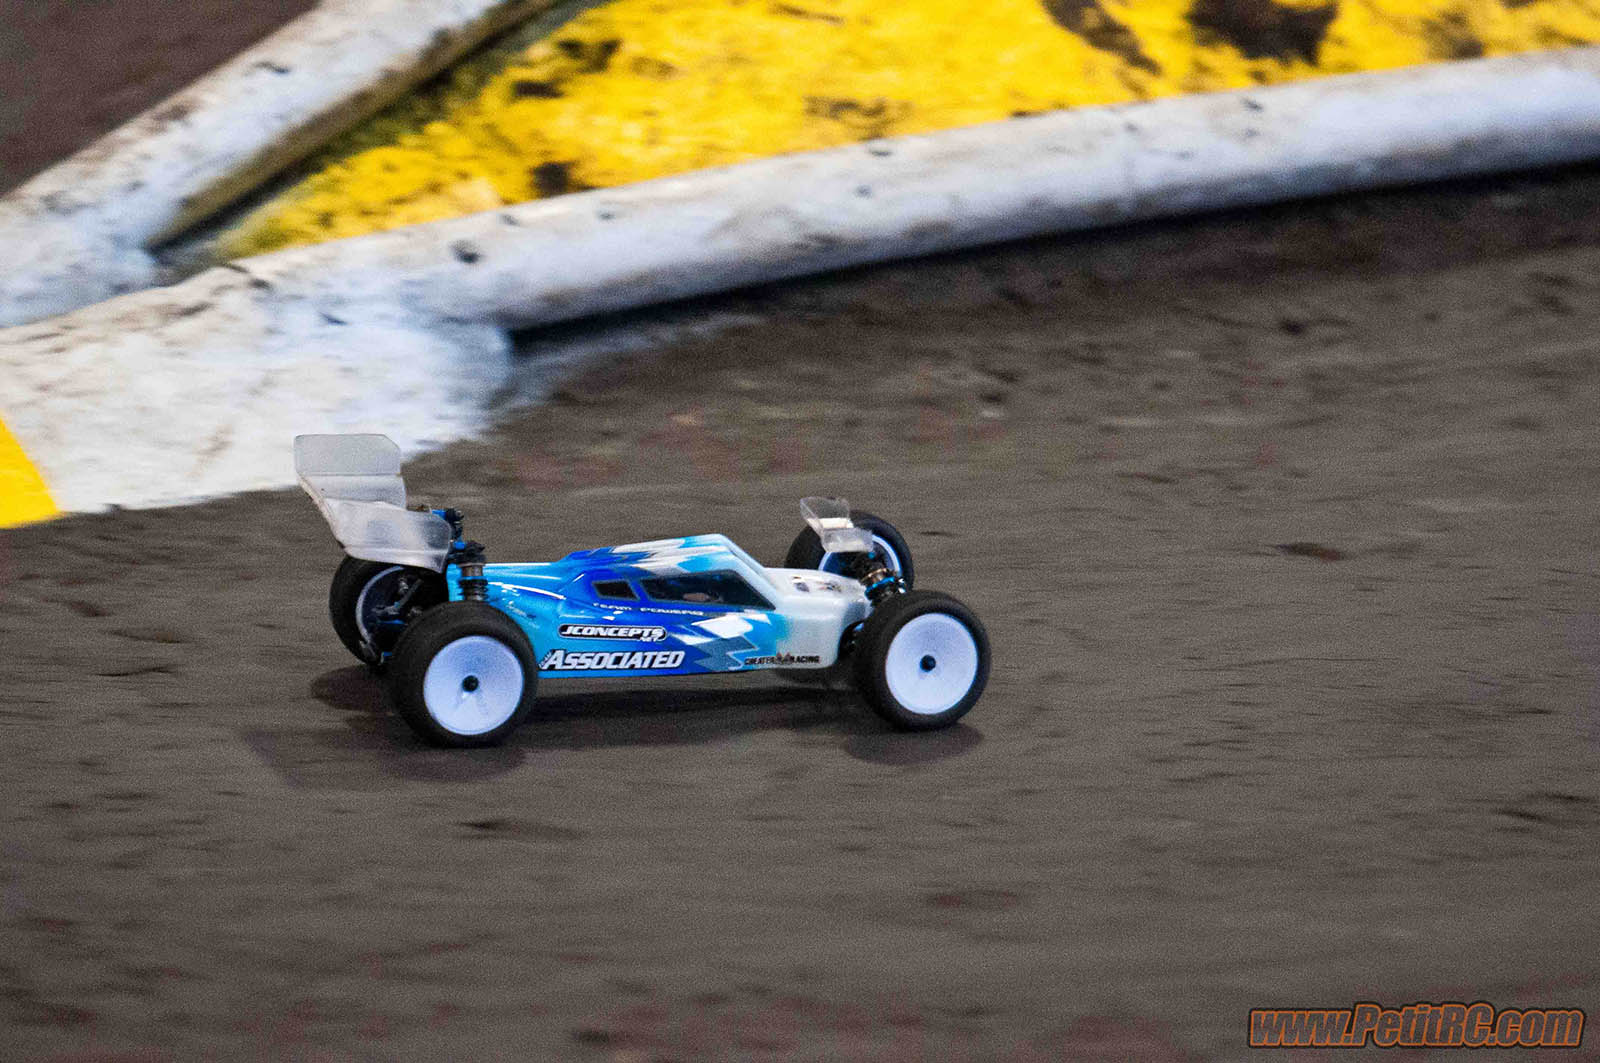 rc hobies with B6d Kylelayton Norcalhobbies2016091718 on 32464657861 likewise 32344879334 also B6D KyleLayton NorCalHobbies2016091718 moreover 1293012409 moreover Watch.